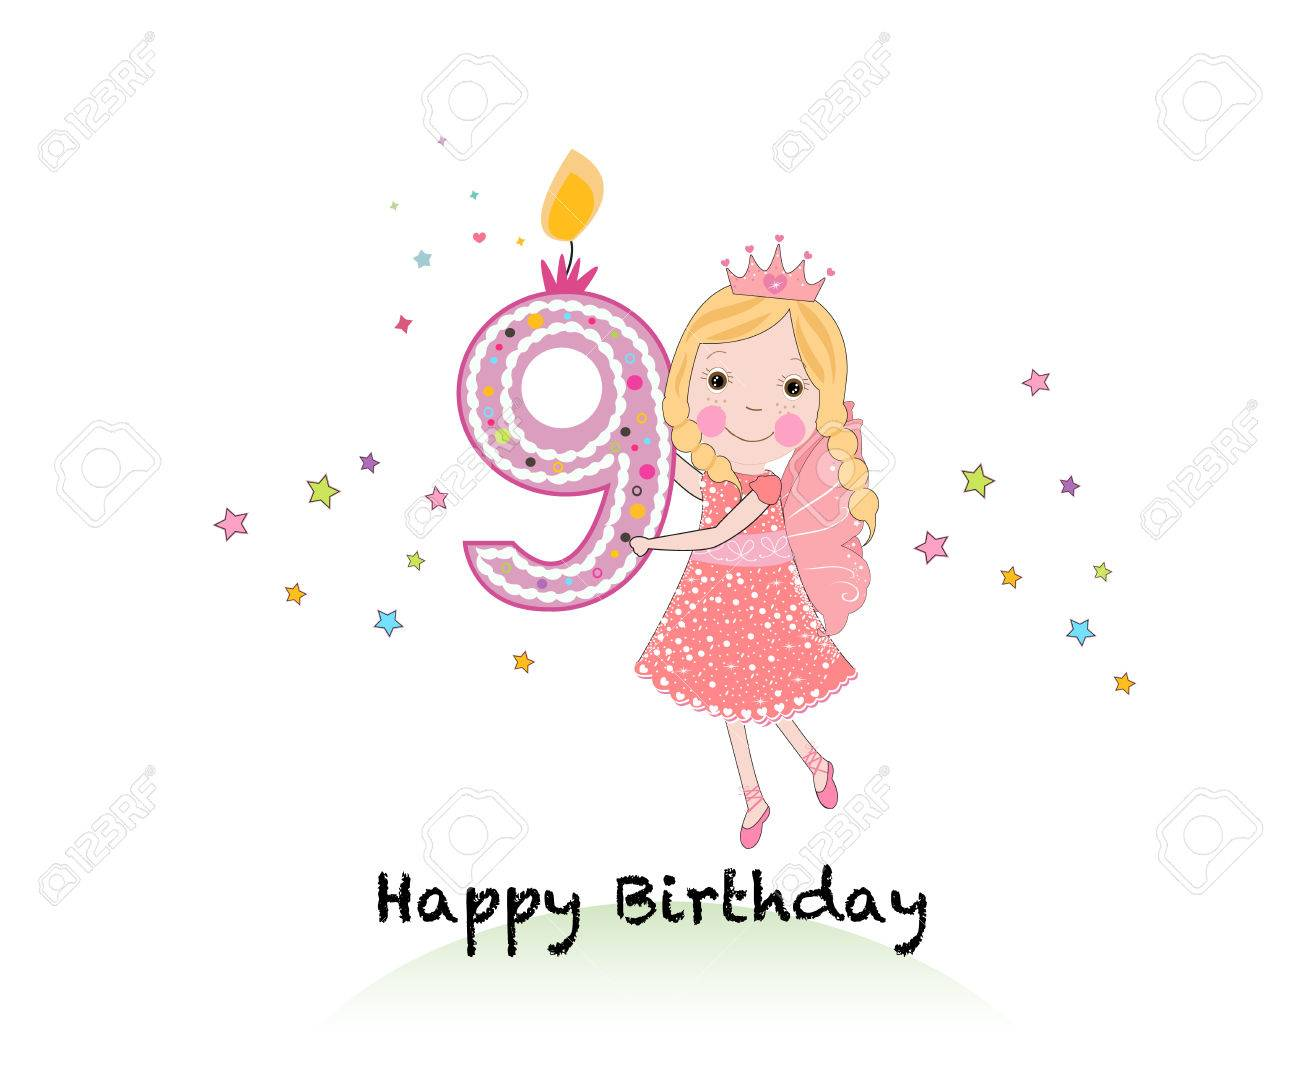 Happy ninth birthday candle girl greeting card with cute fairy happy ninth birthday candle girl greeting card with cute fairy tale vector background stock vector bookmarktalkfo Images